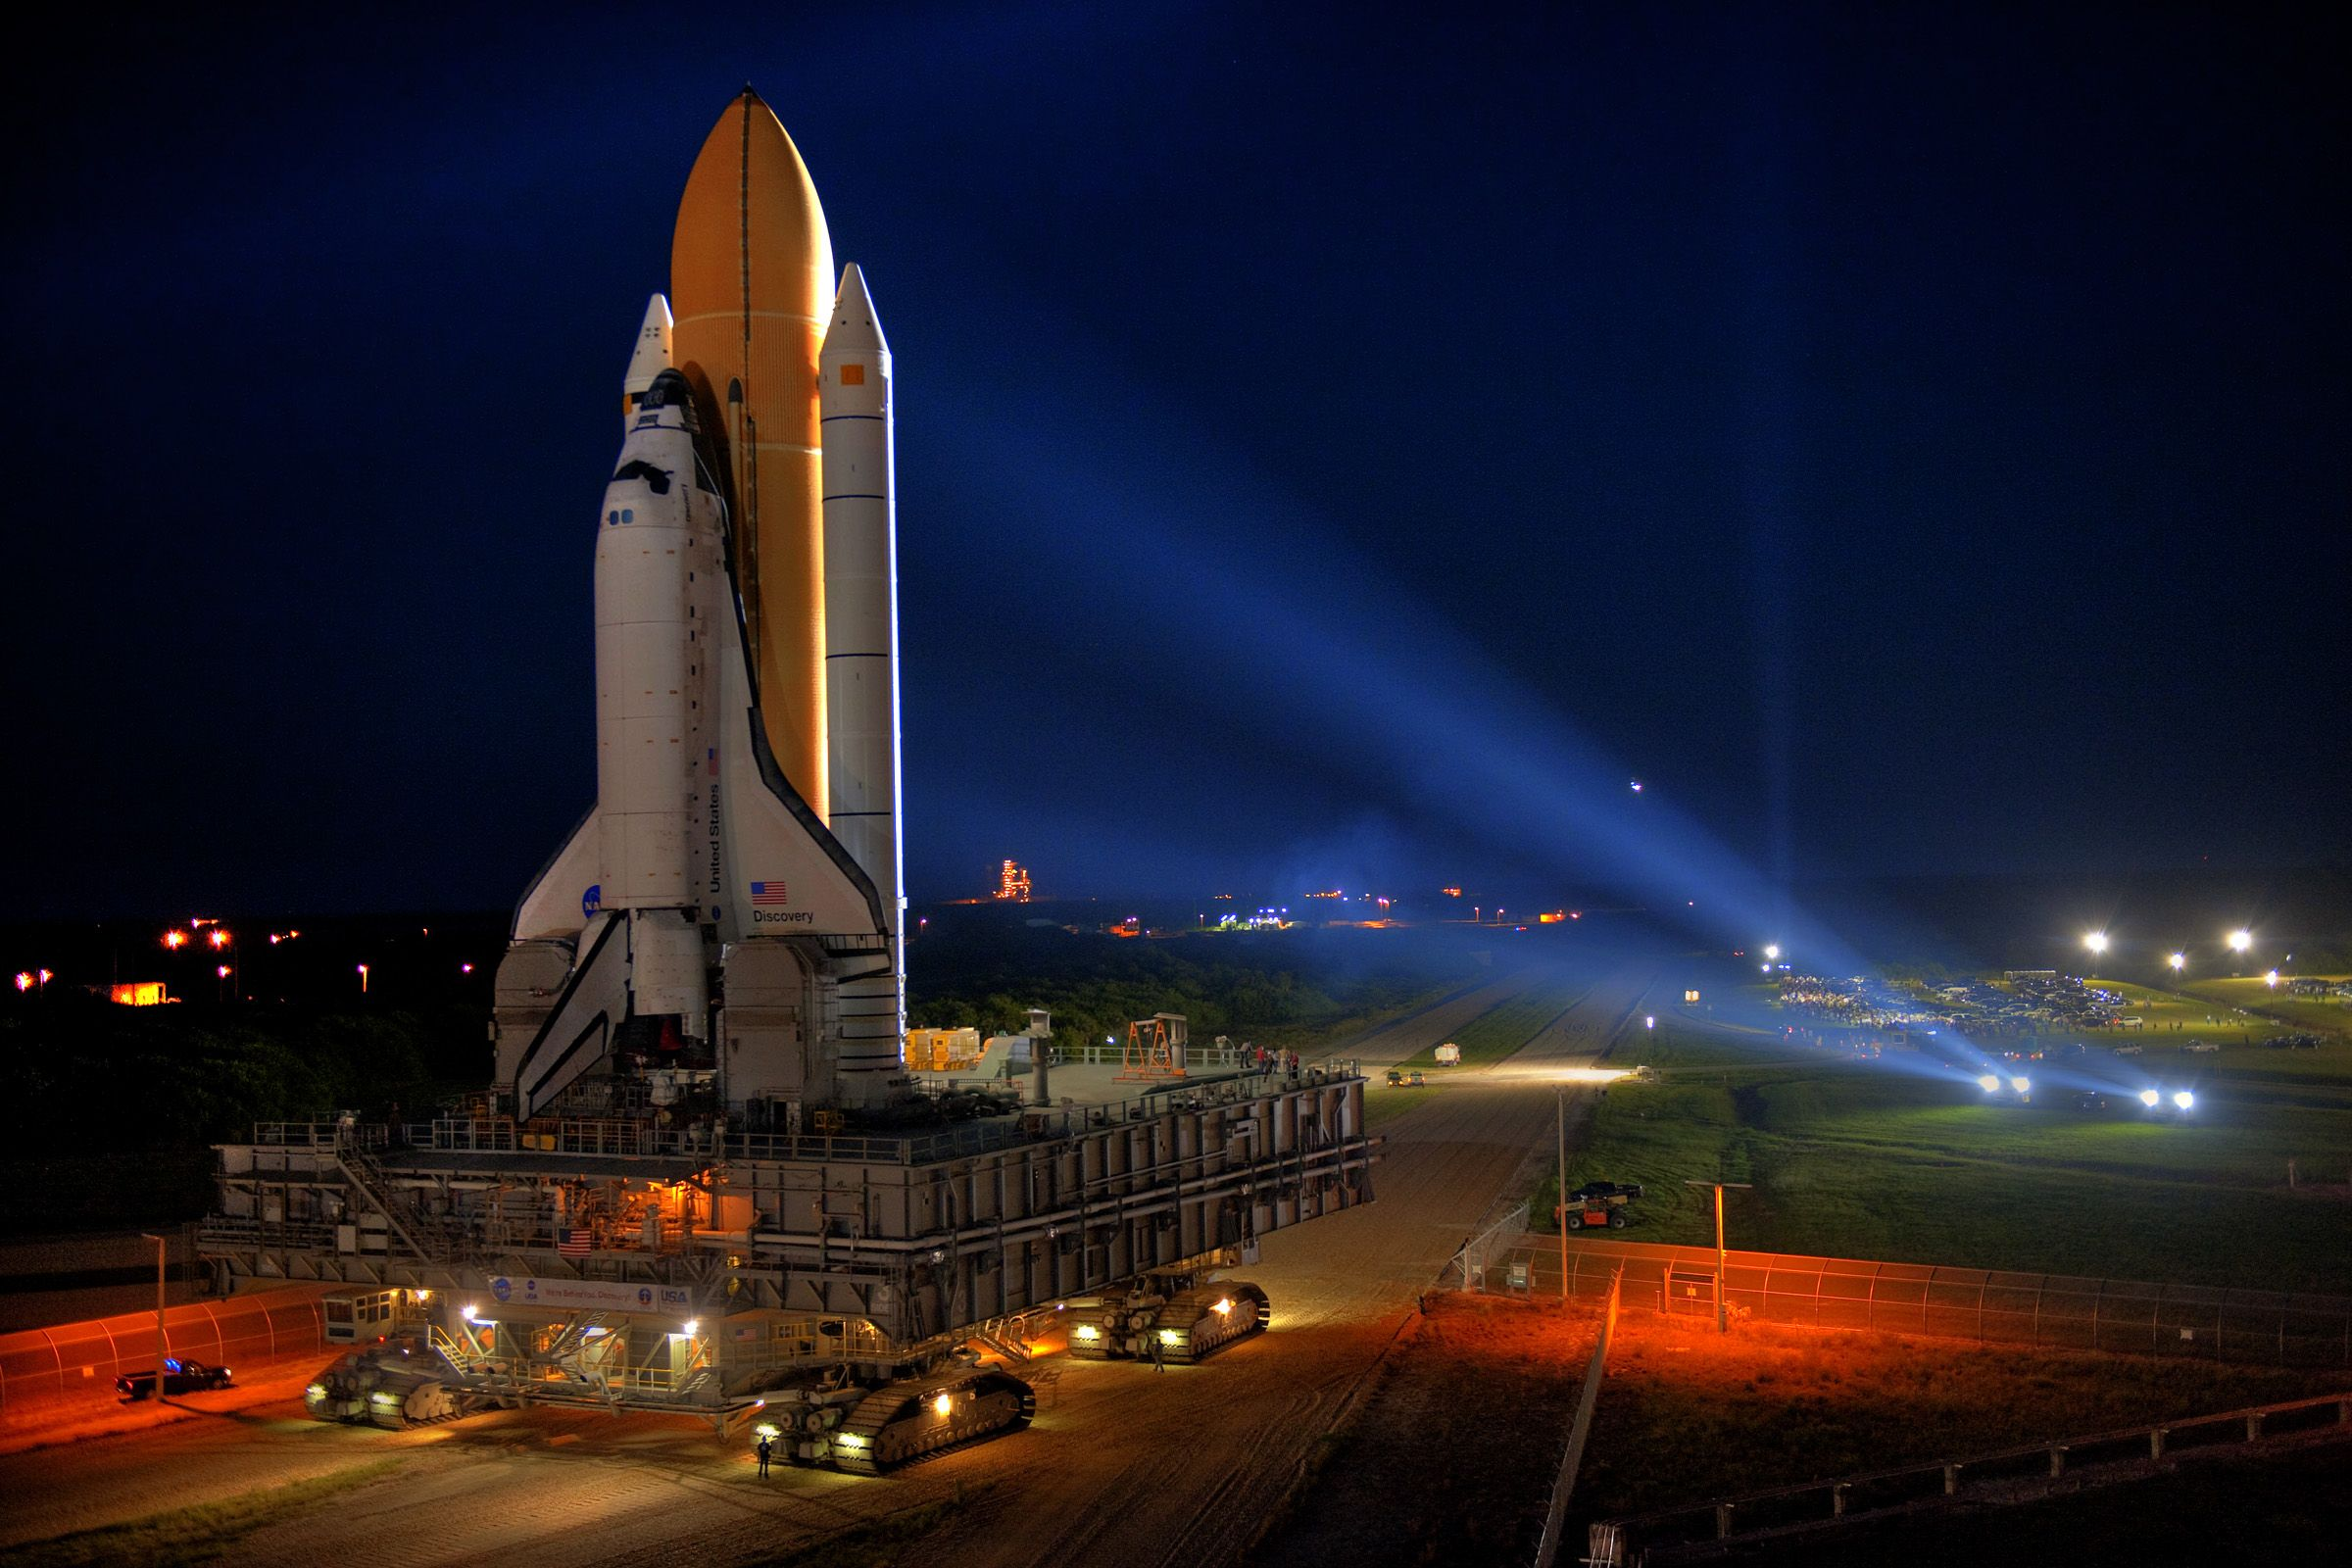 text space shuttle discovery missions - photo #16